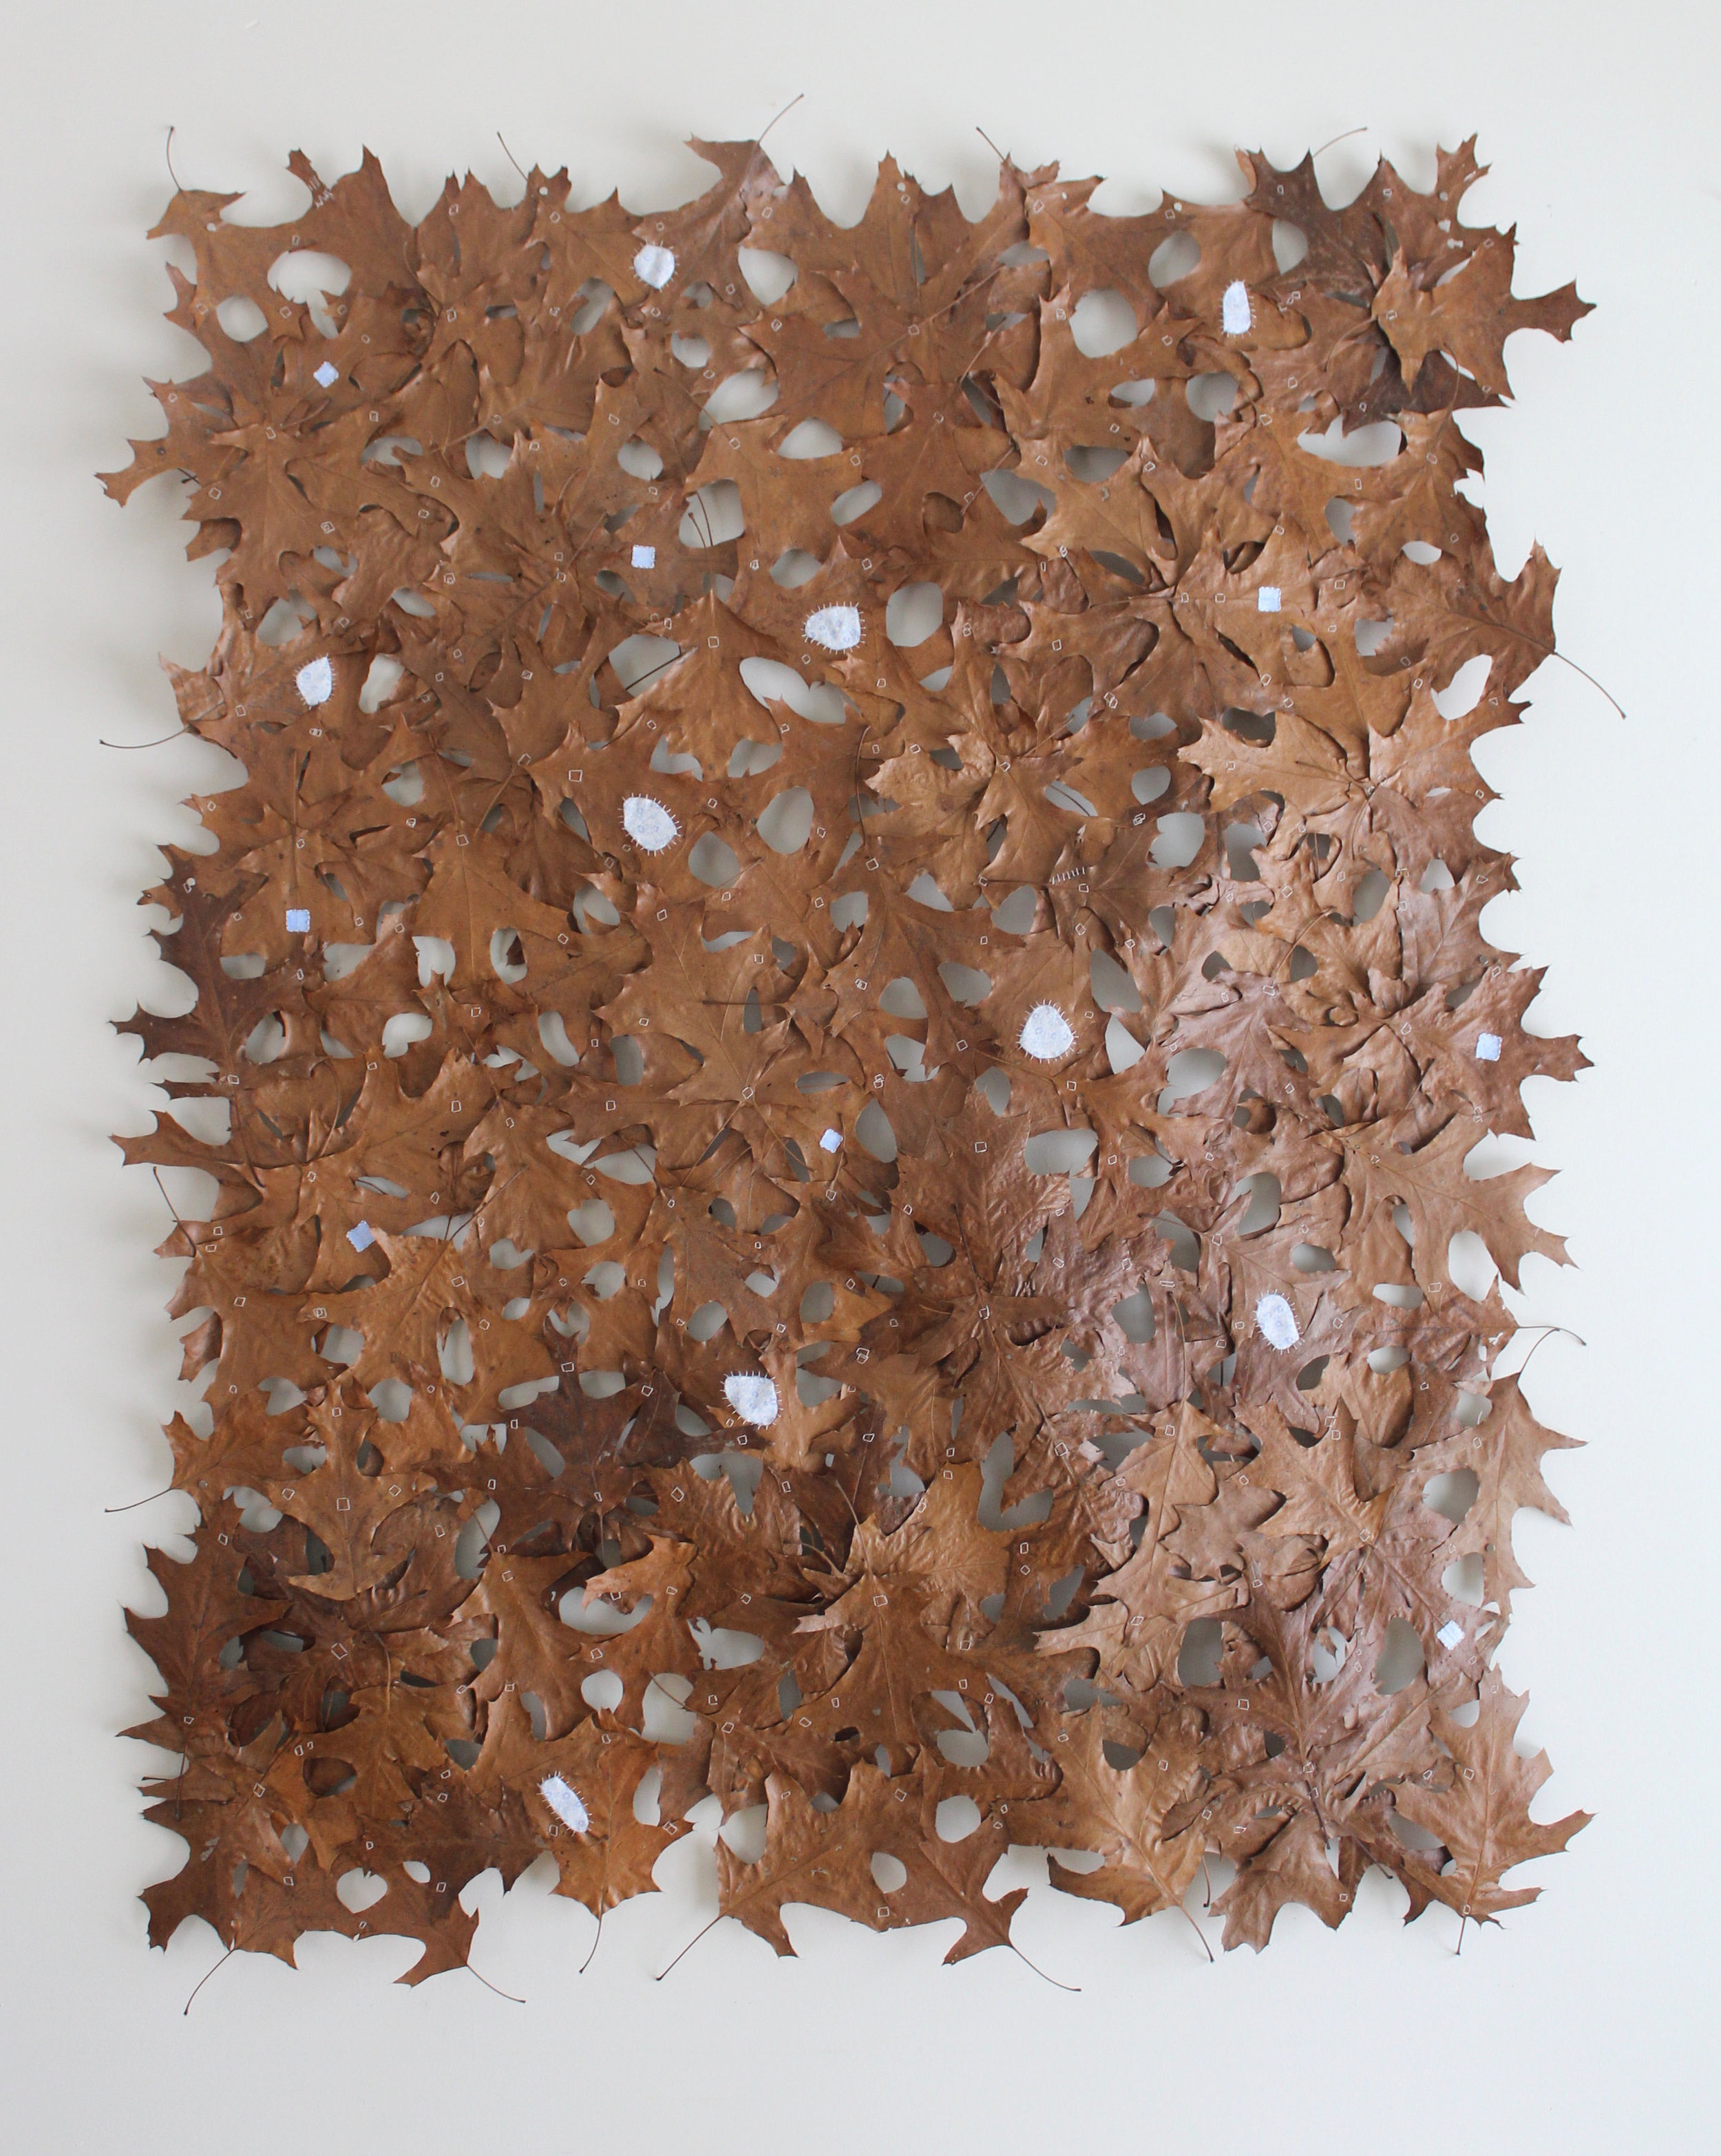 """THE WILD AND WONDERFUL MAKE DO, oak leaves, thread, fabric remnants, gesso, oil stain, 48"""" x 60"""""""